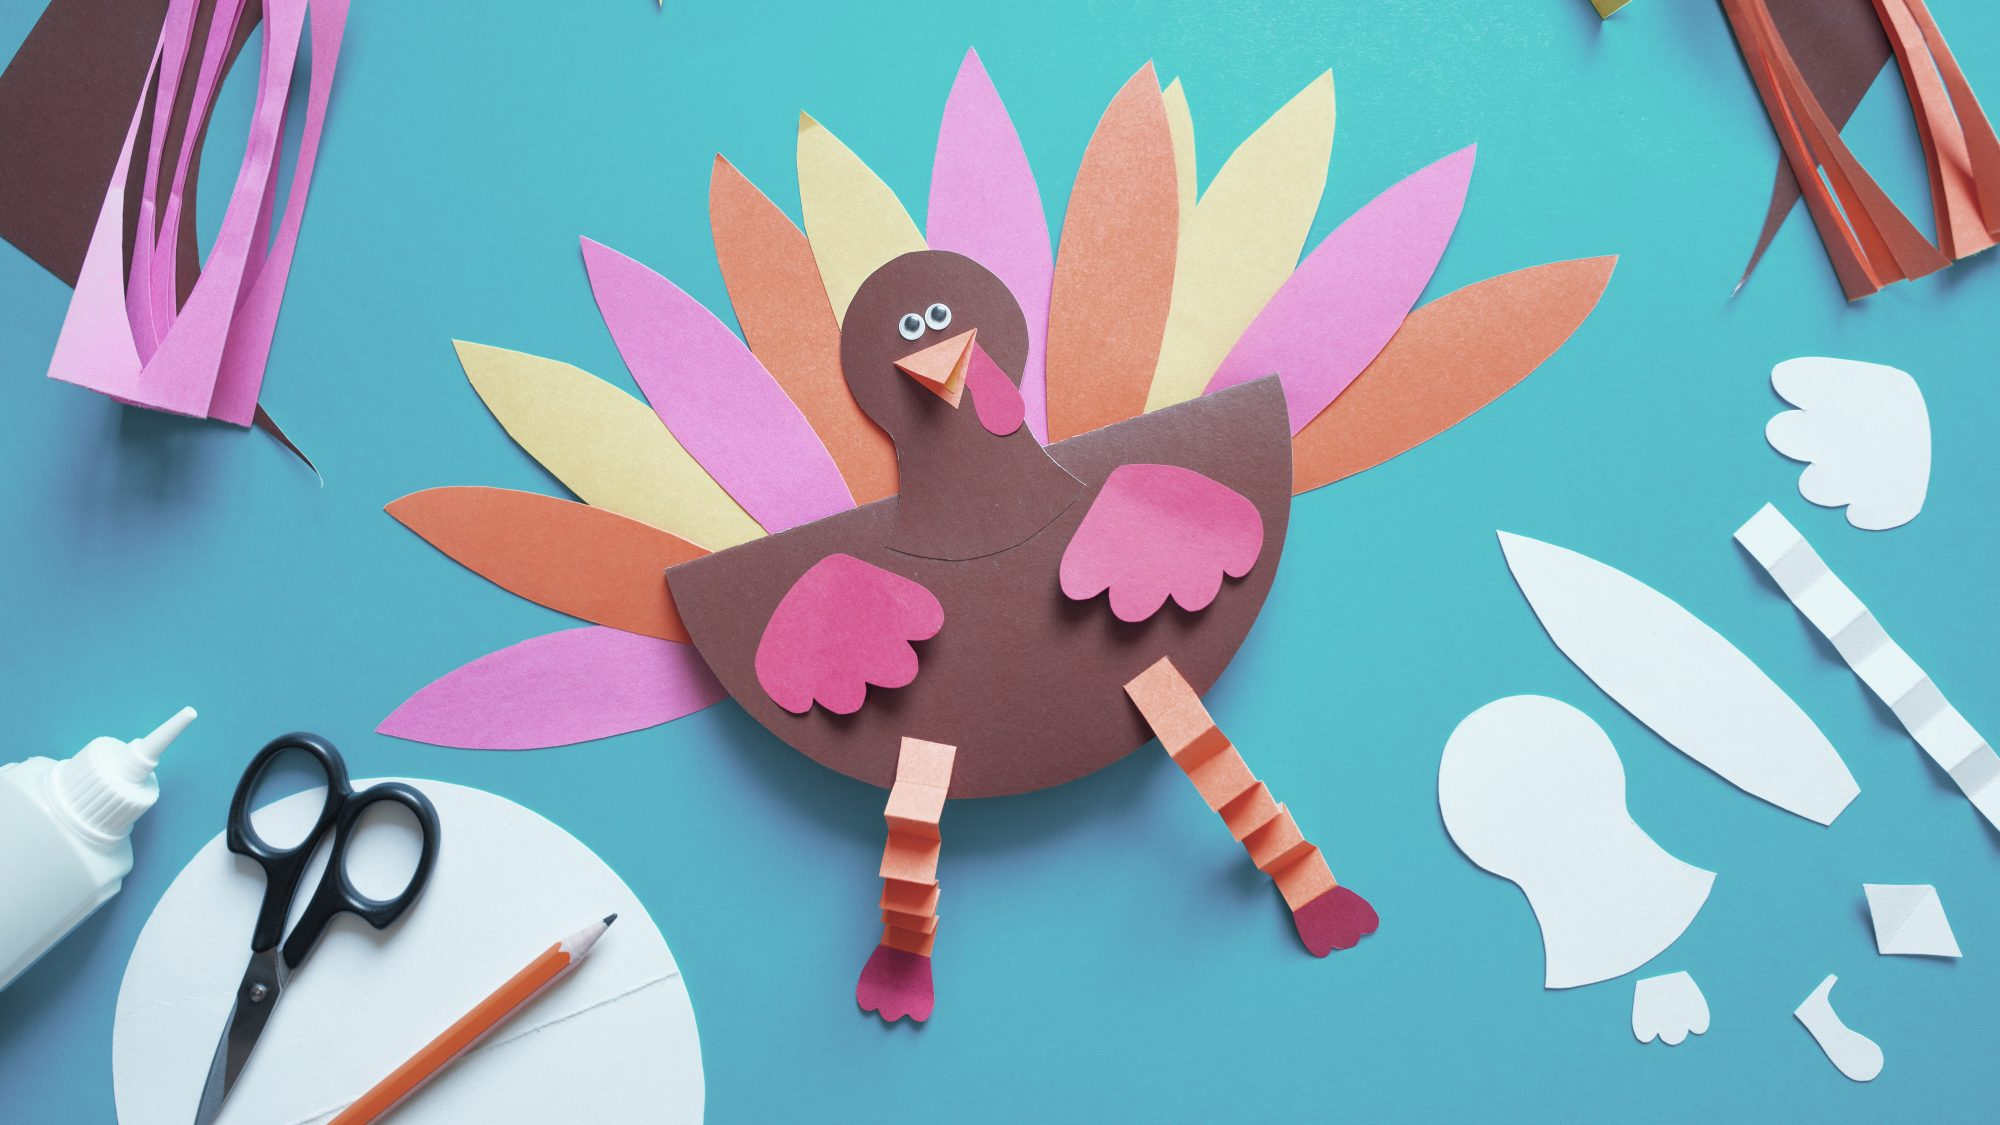 20 Thanksgiving Crafts Diy Ideas And More For Kids And Adults Real Simple